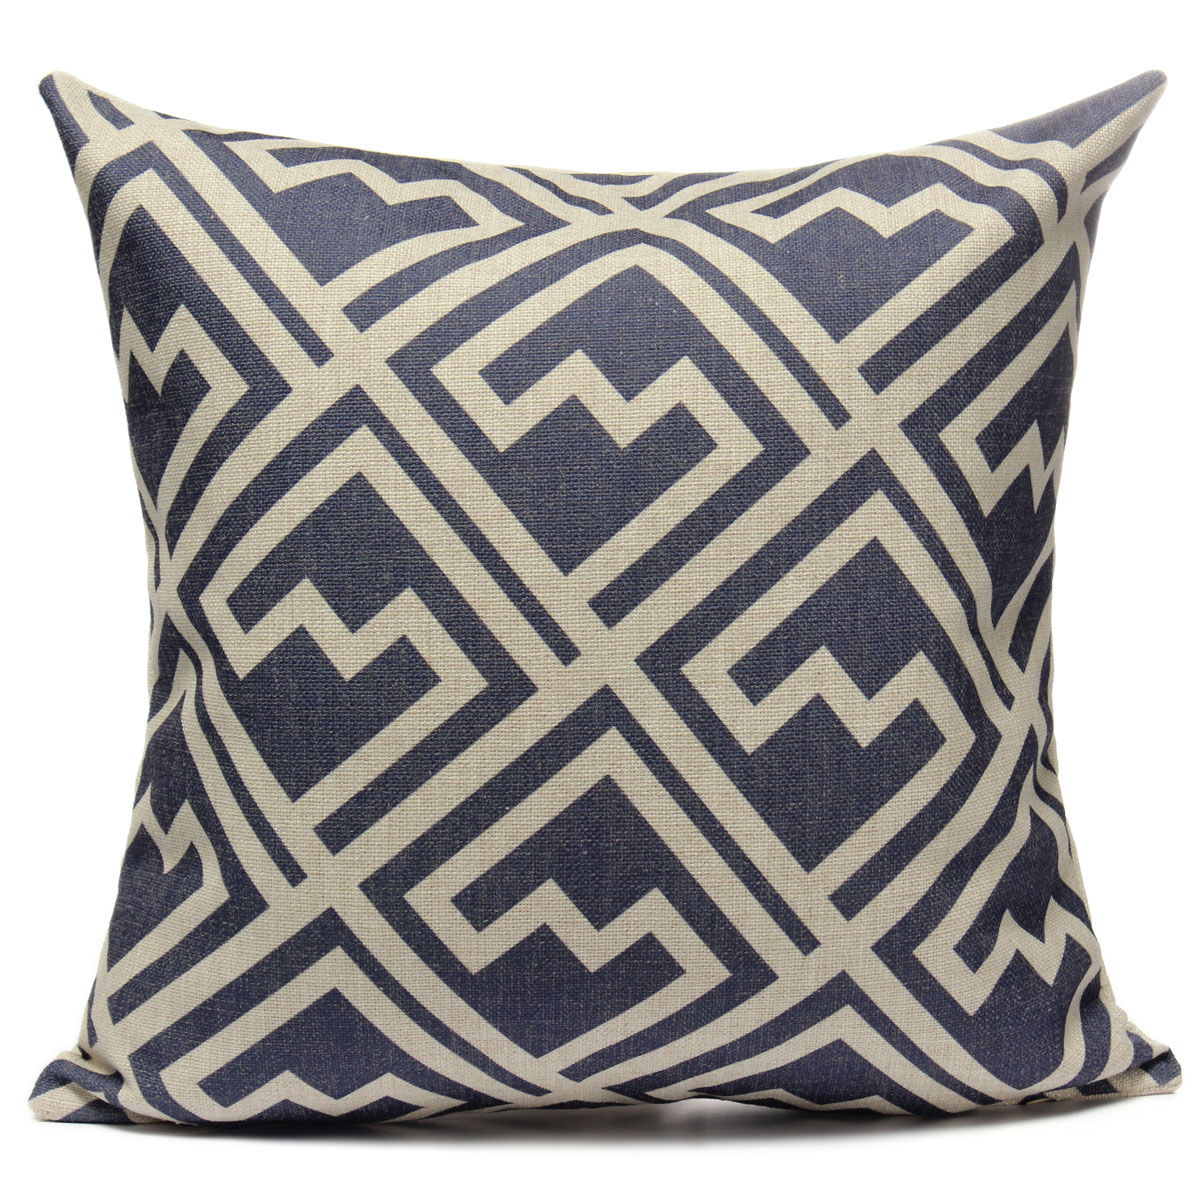 Vintage Geometric Home Decoration Cotton Linen Throw Pillow Case Cushion Cover eBay